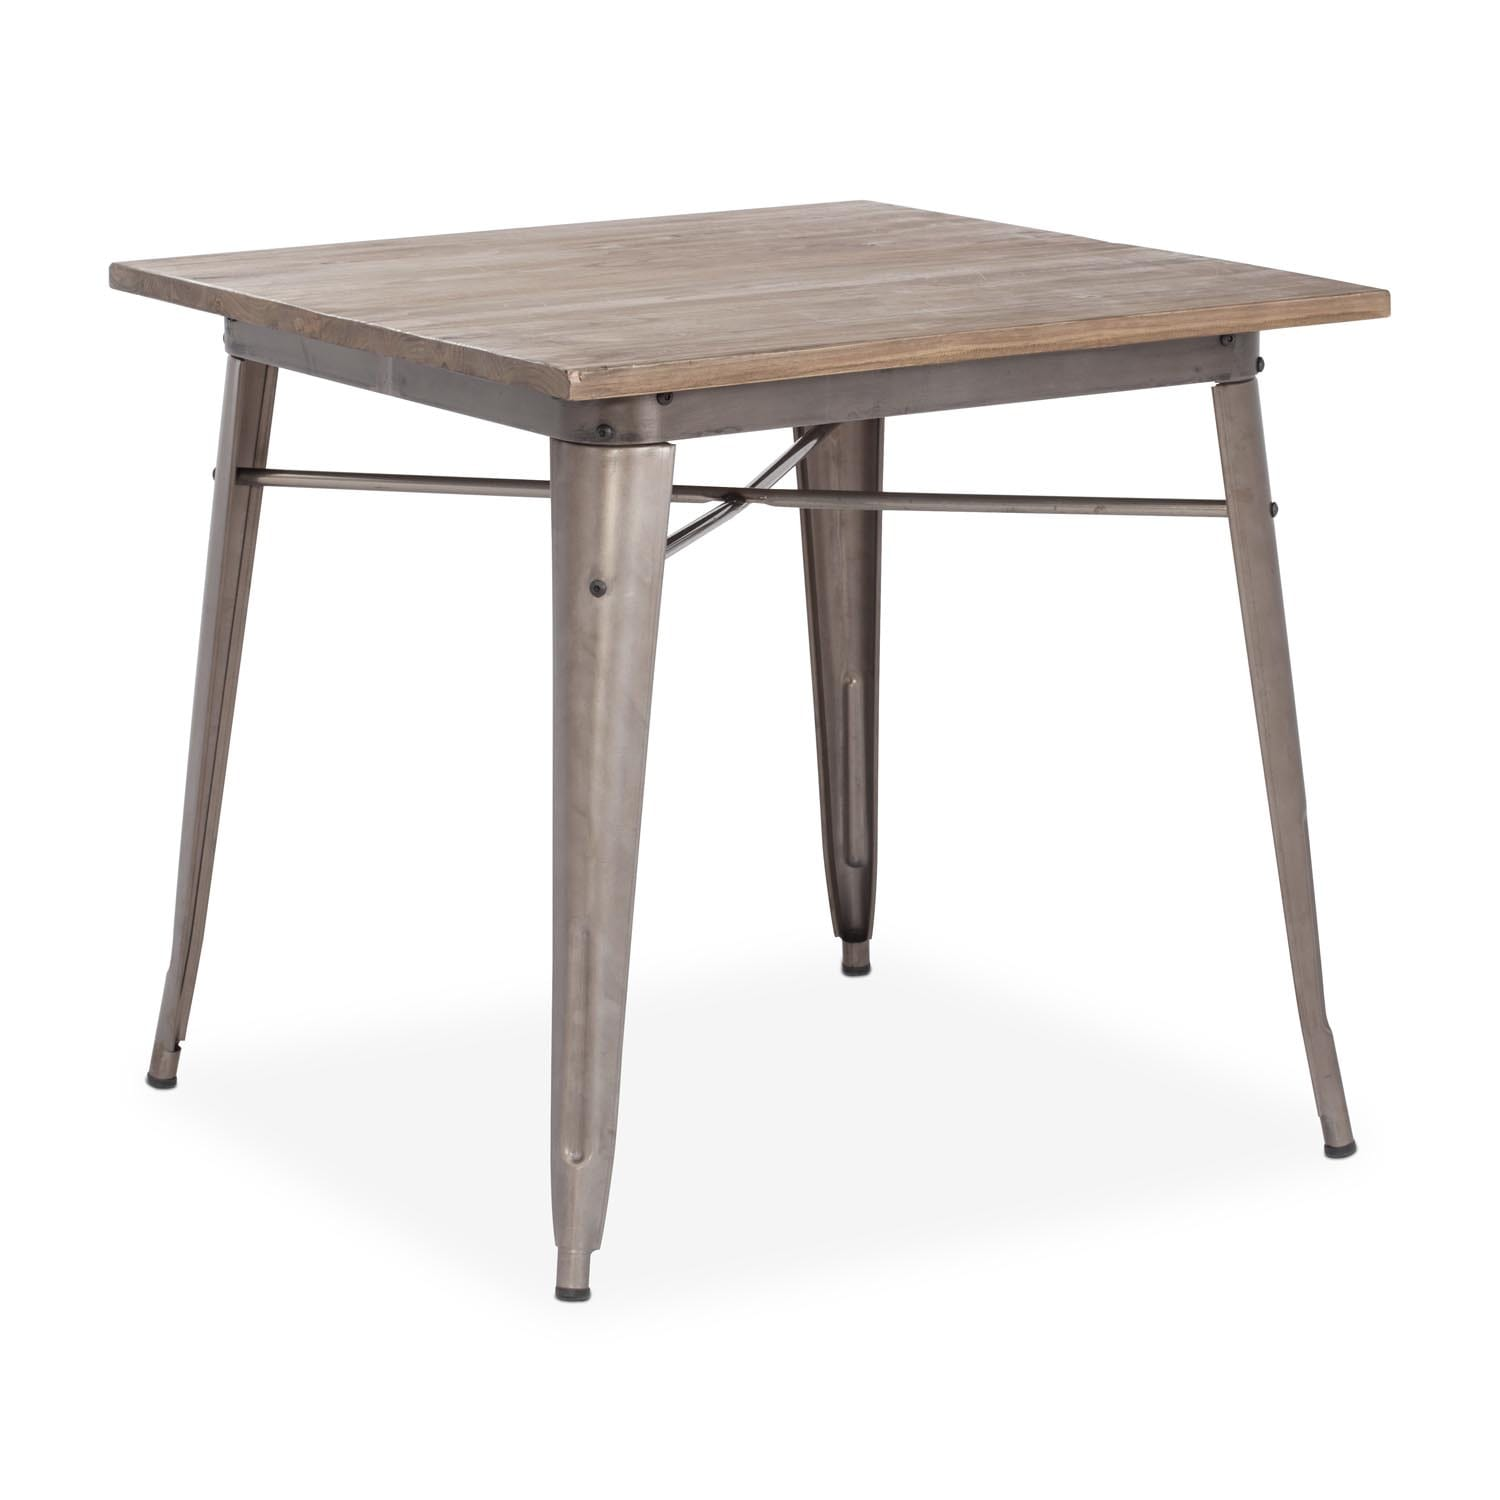 Dining Room Furniture - Rustica Dining Table - Steel